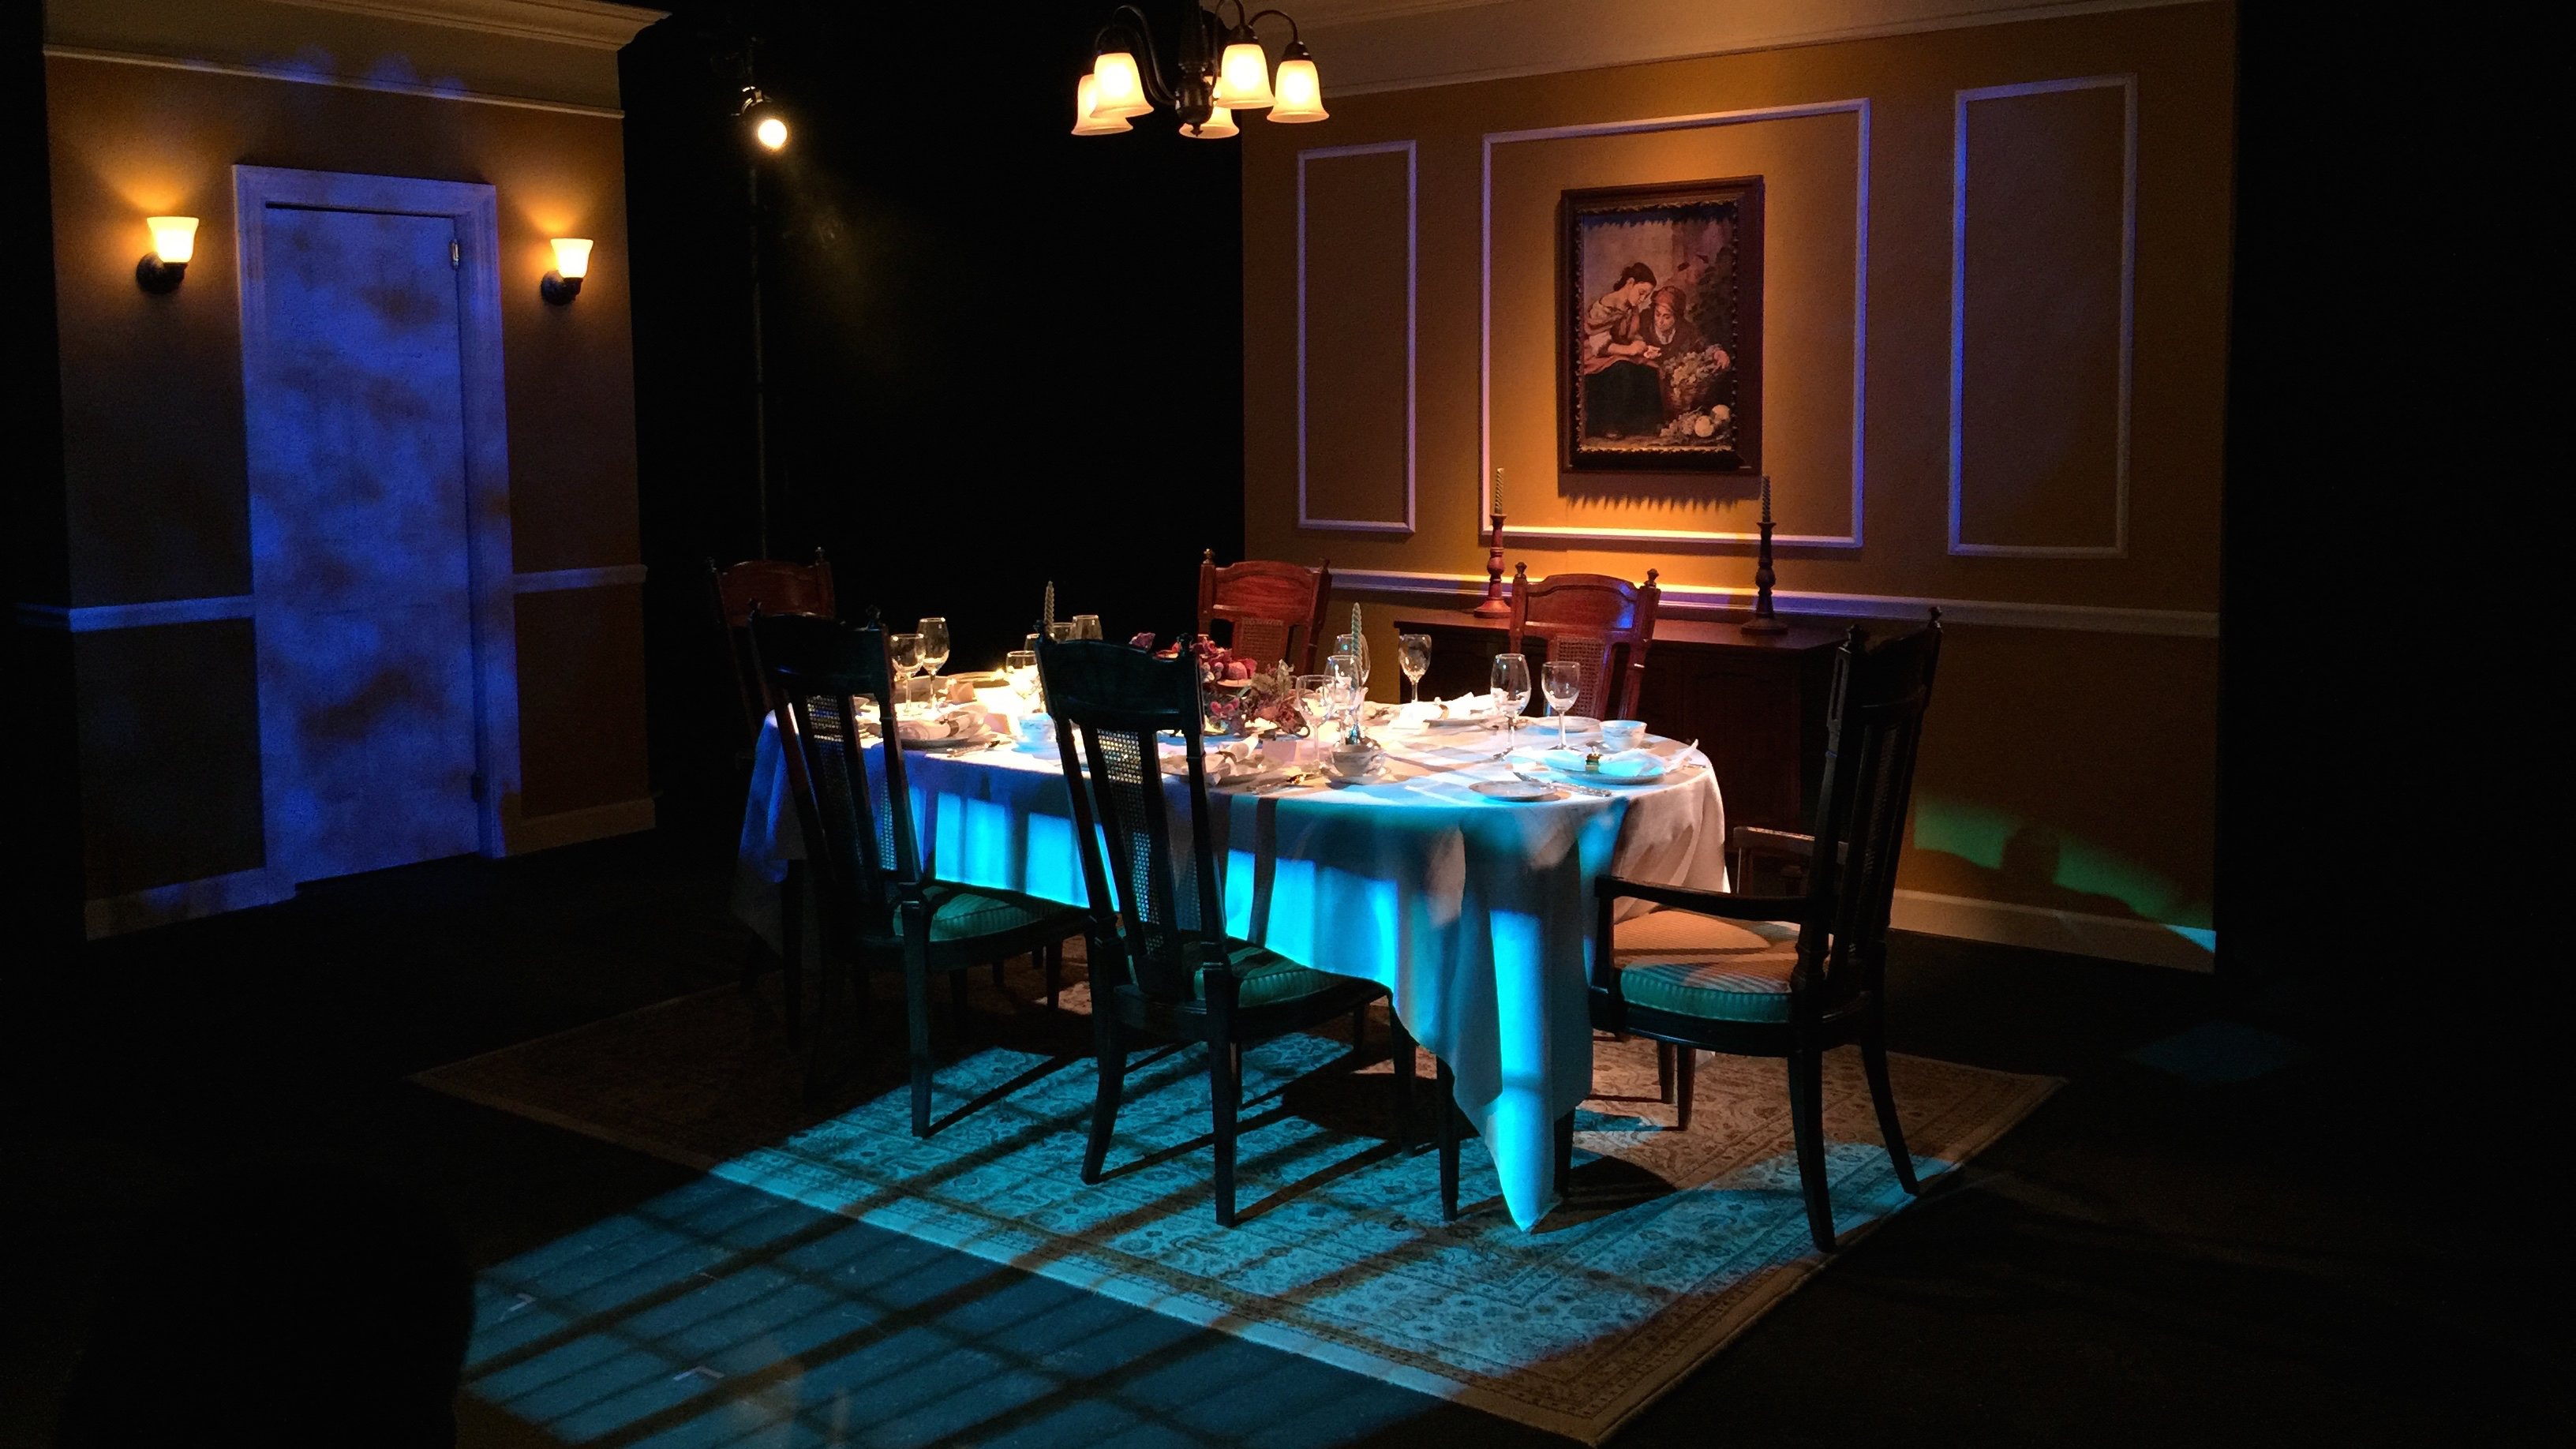 The Dining Room    November 2015. The Dining Room    November 2015   KMR land    Kevin Michael Reed